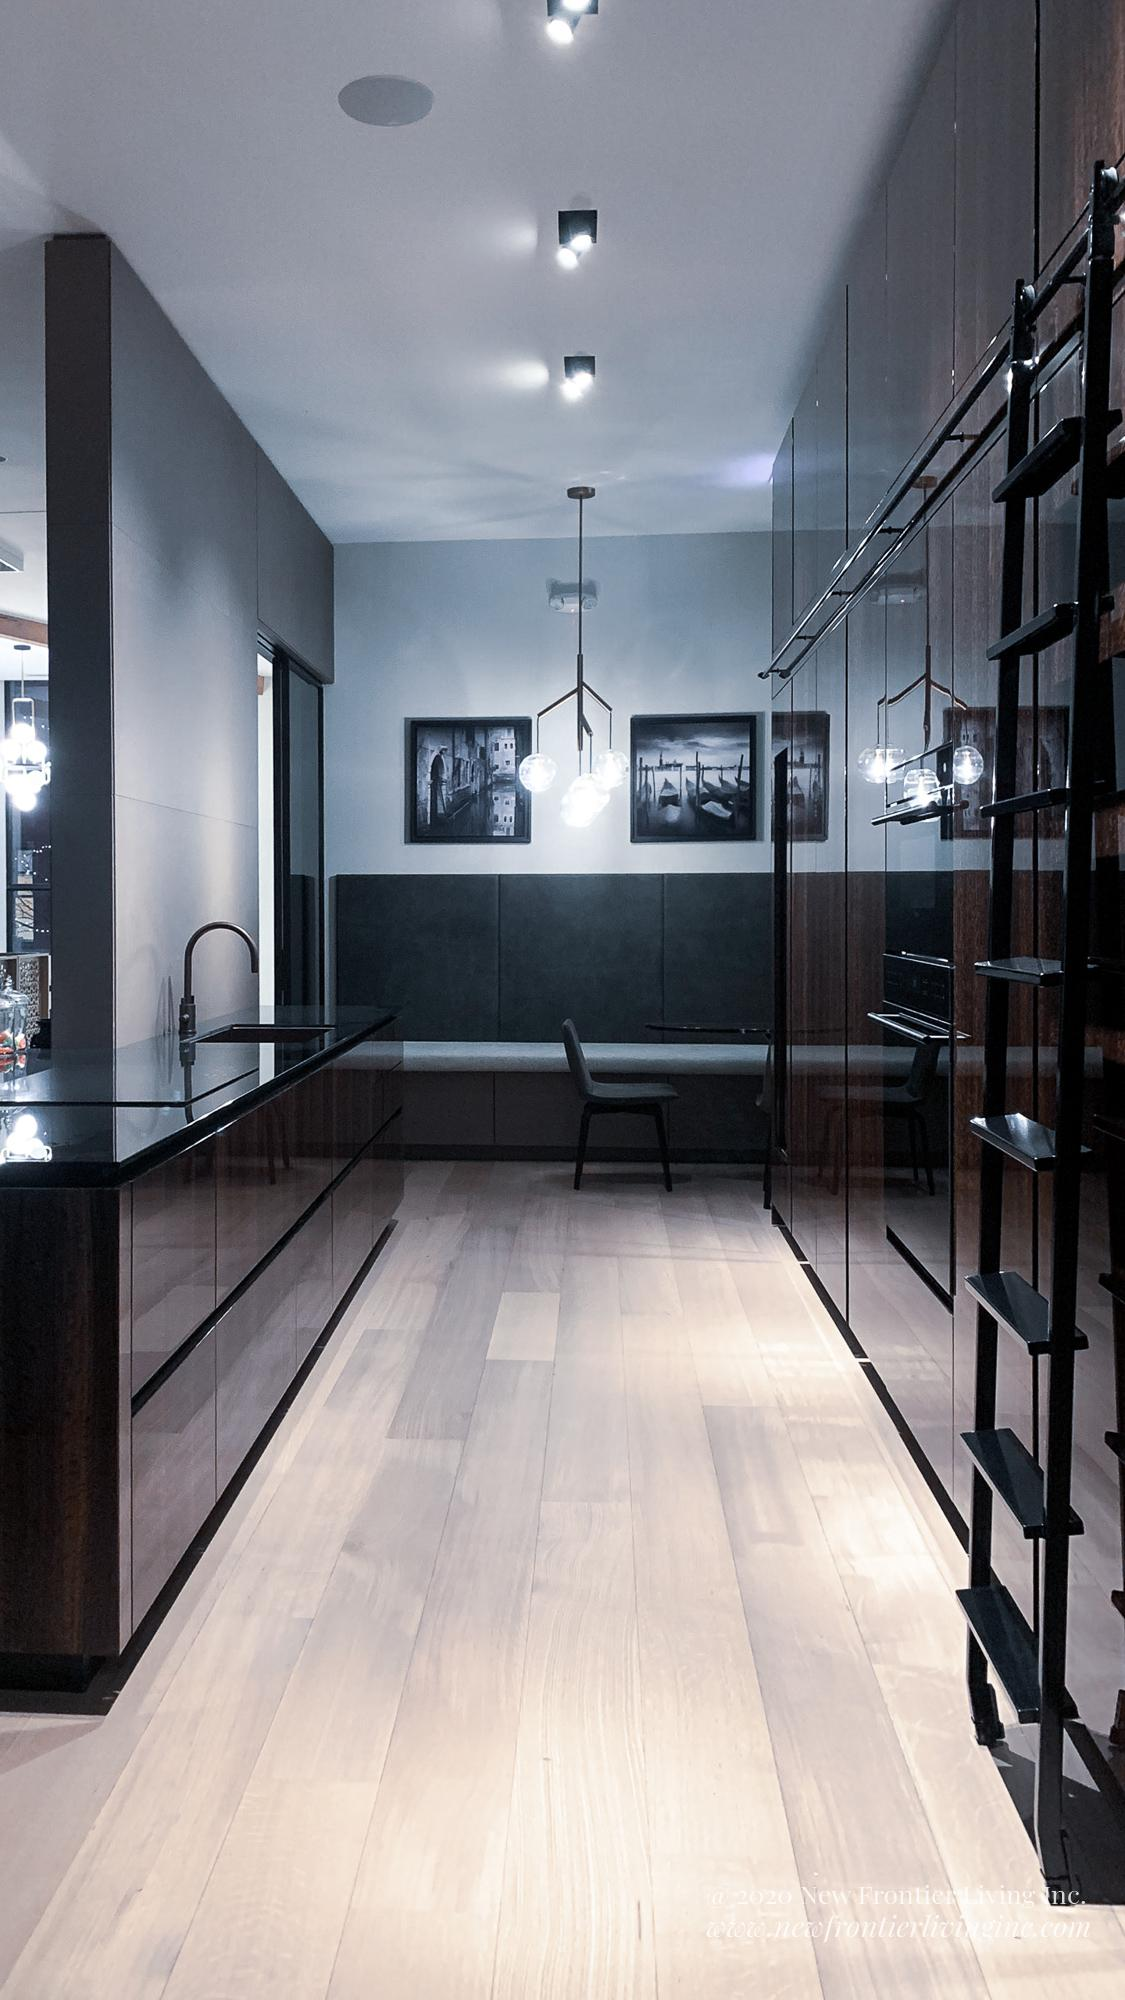 Black and Brown glossy kitchen with black countertop and light wooden floor, sliding ladder on the right